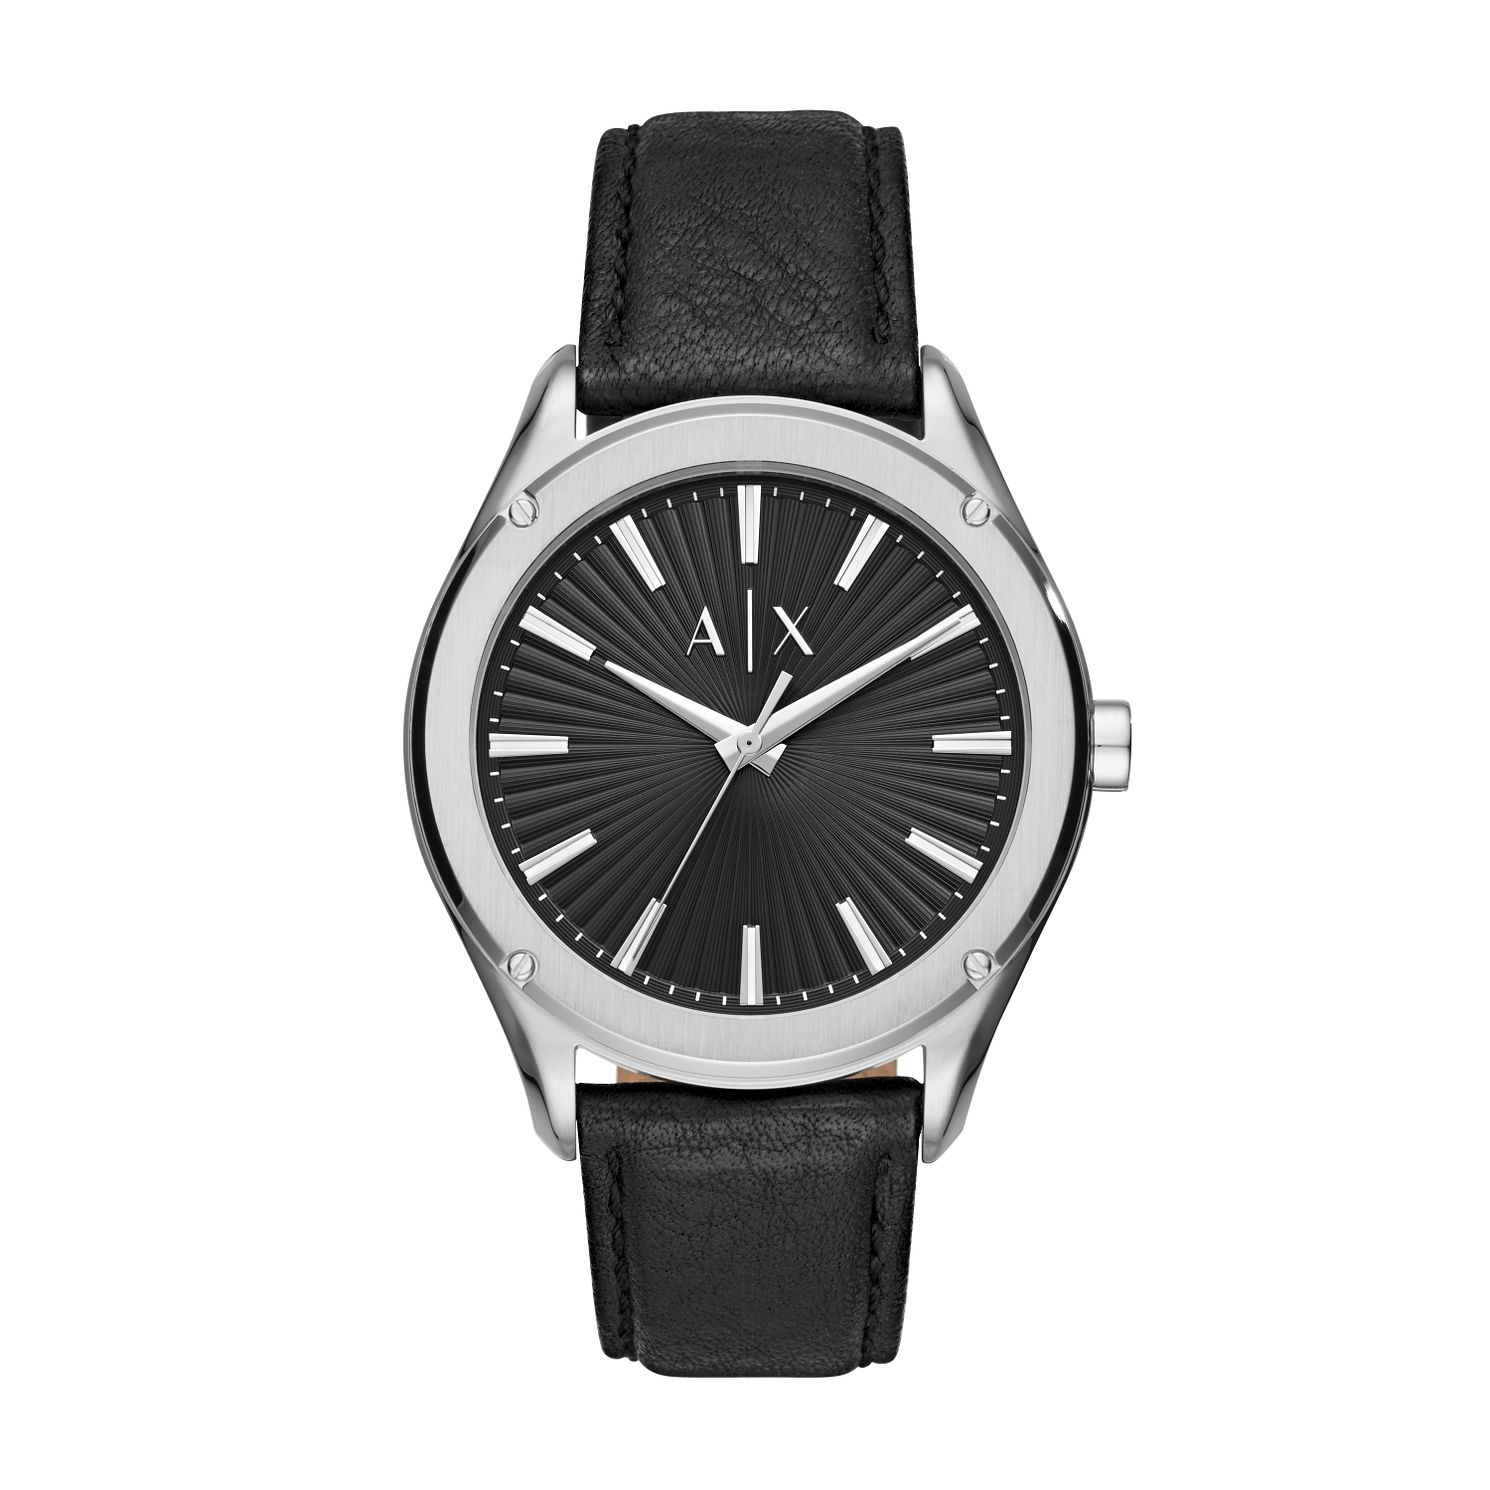 Armani Exchange Men's Black Leather Strap Watch - Product number 5326818